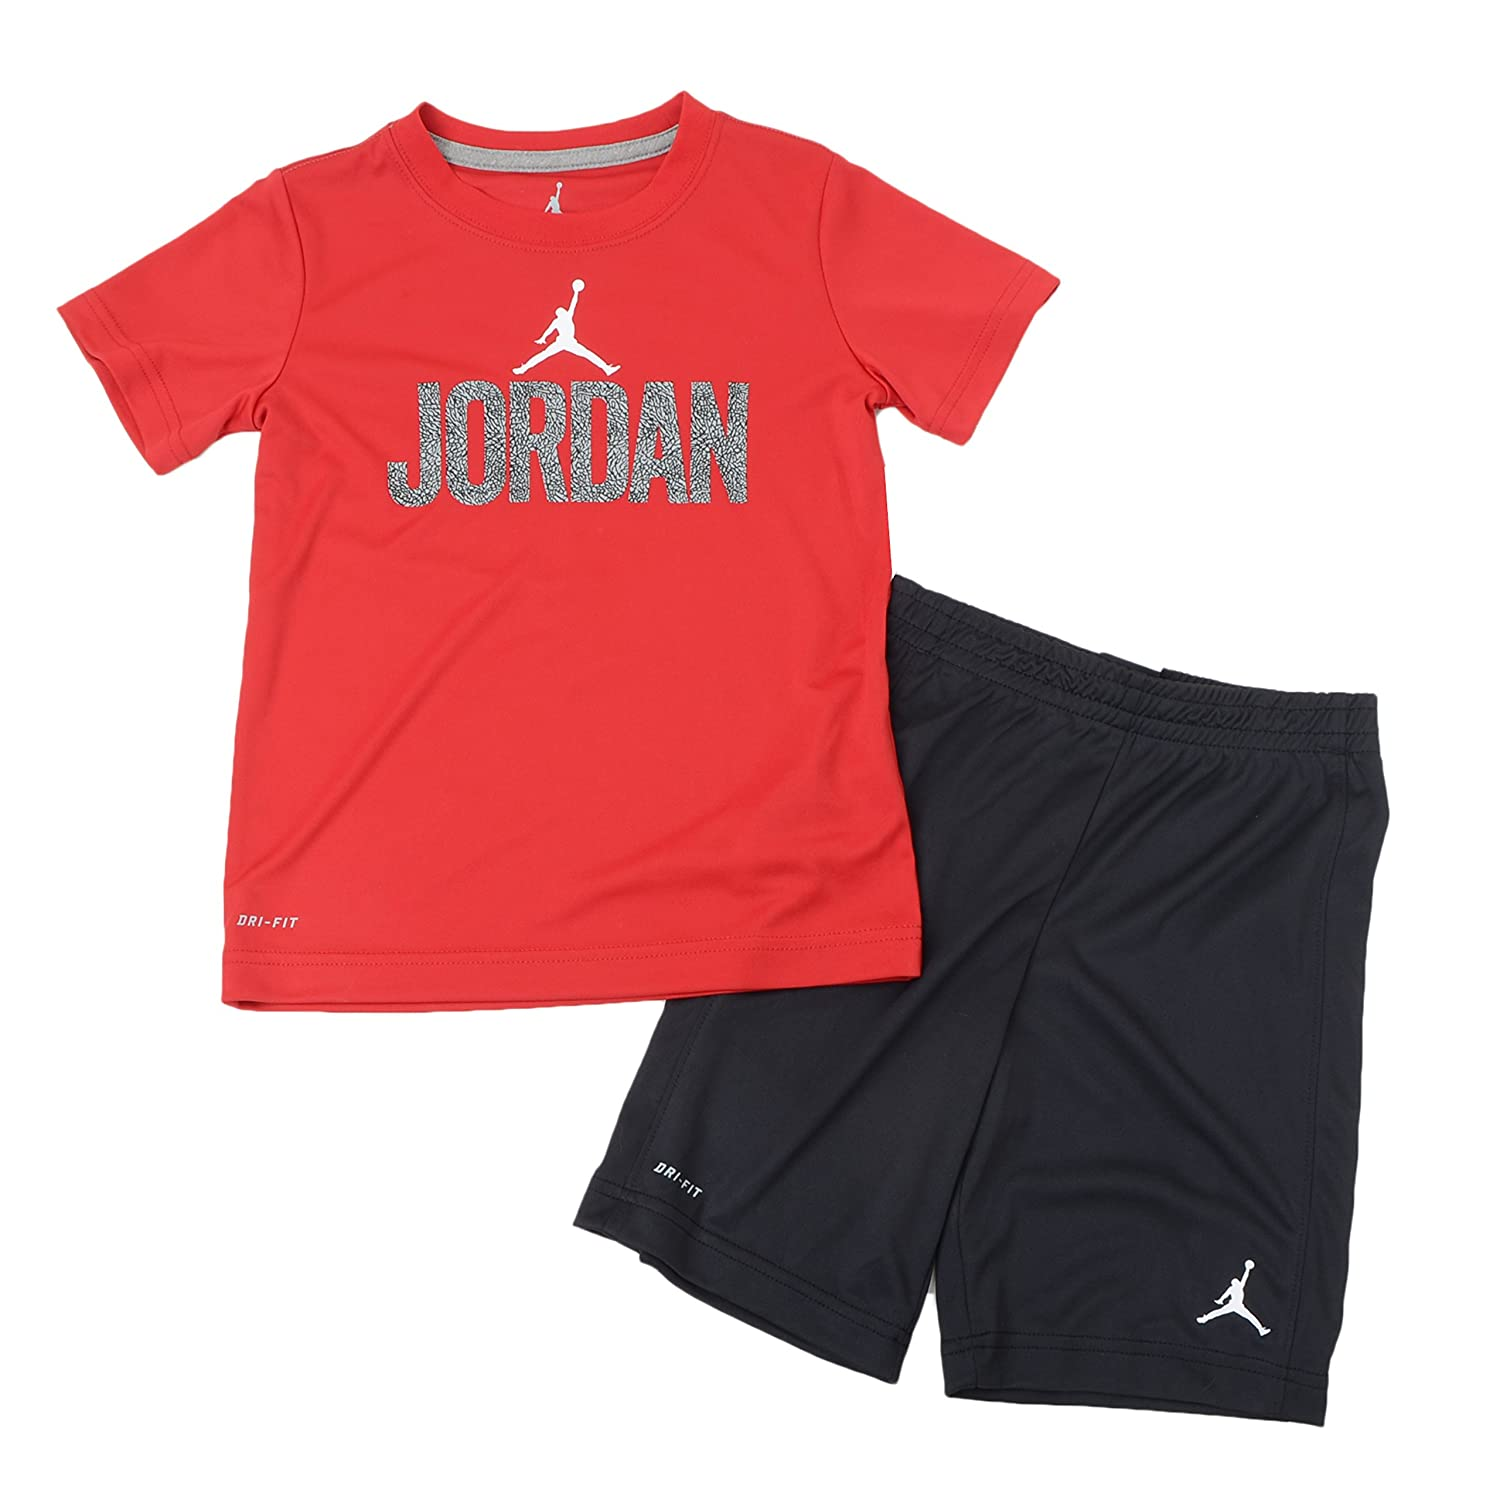 13092682fc6 Top 10 wholesale Nike Outfit Set - Chinabrands.com